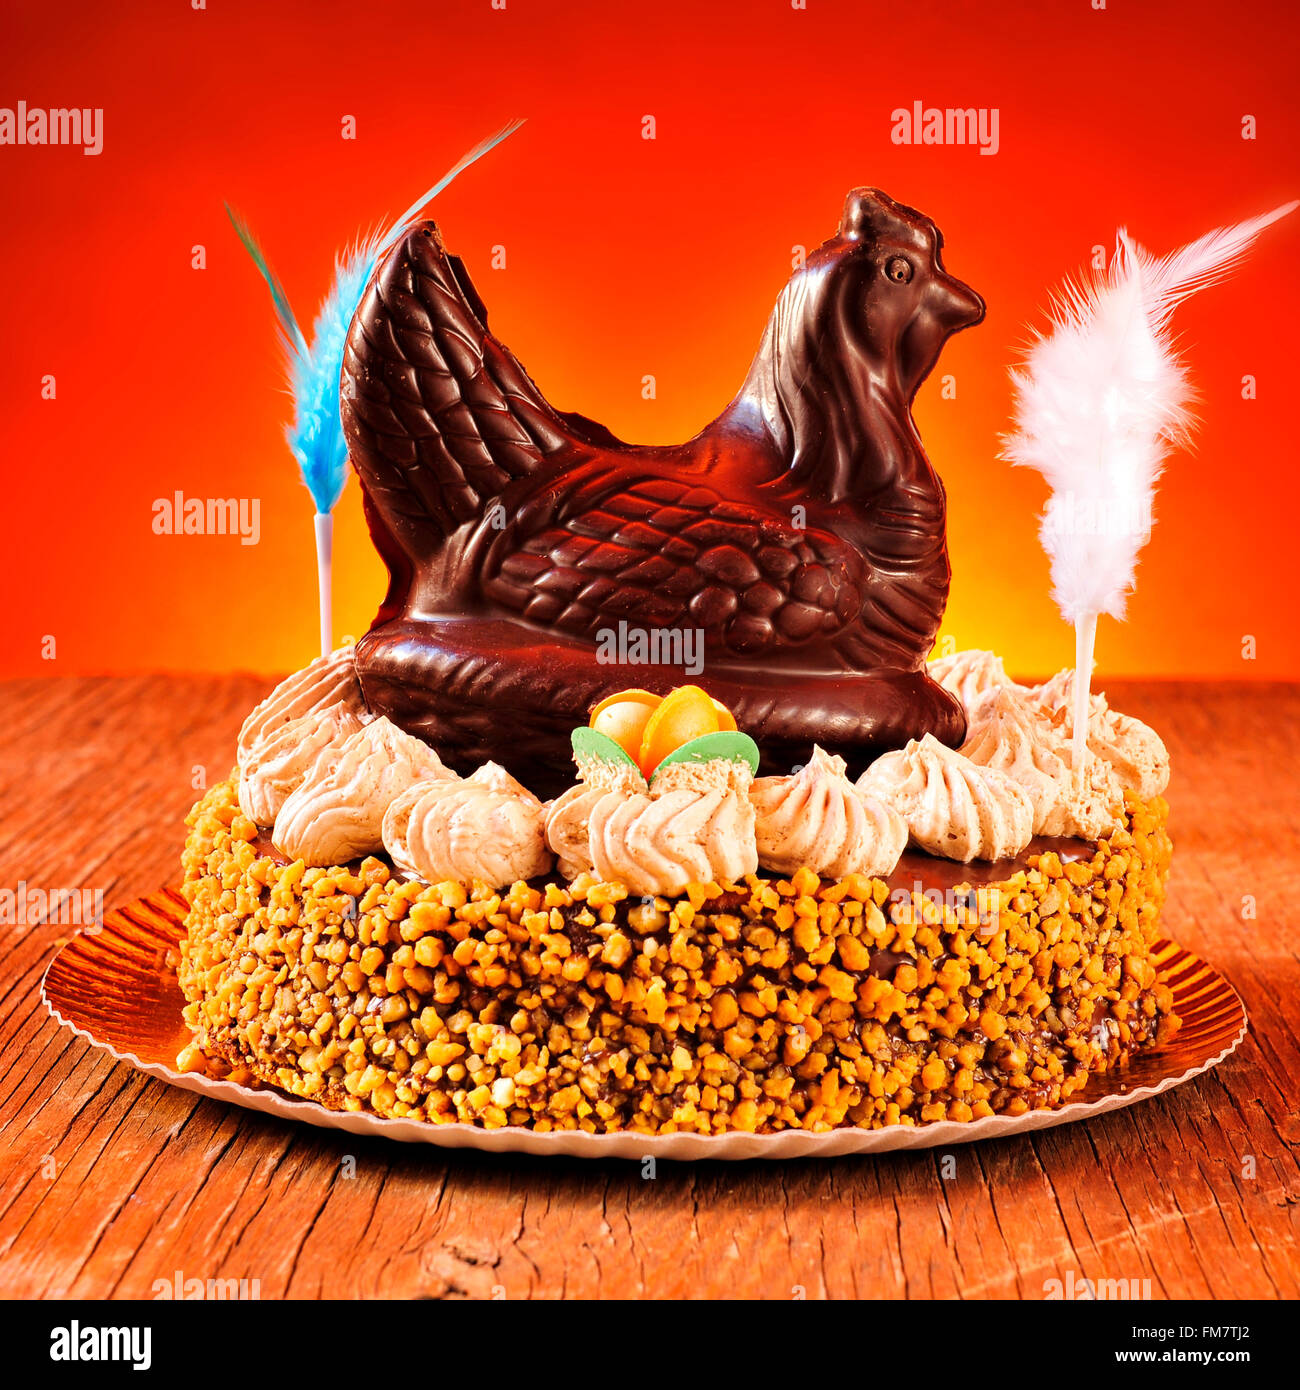 a mona de pascua, a cake eaten in Spain on Easter Monday, ornamented with feathers and a chocolate chicken, on a Stock Photo